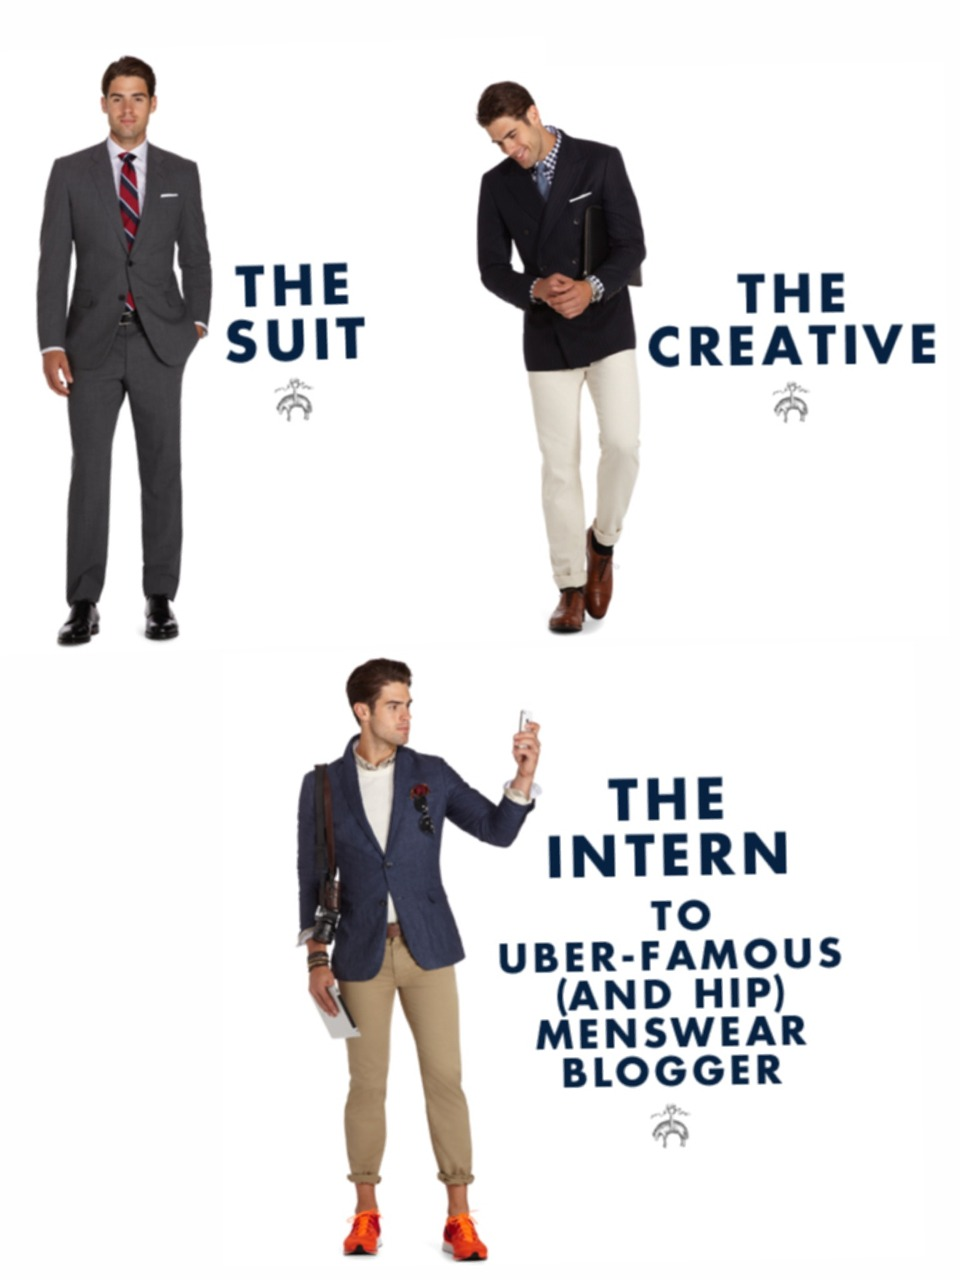 imdefinitelythe bottom one here and i have no problem expressing that through how i dress on a daily basis.